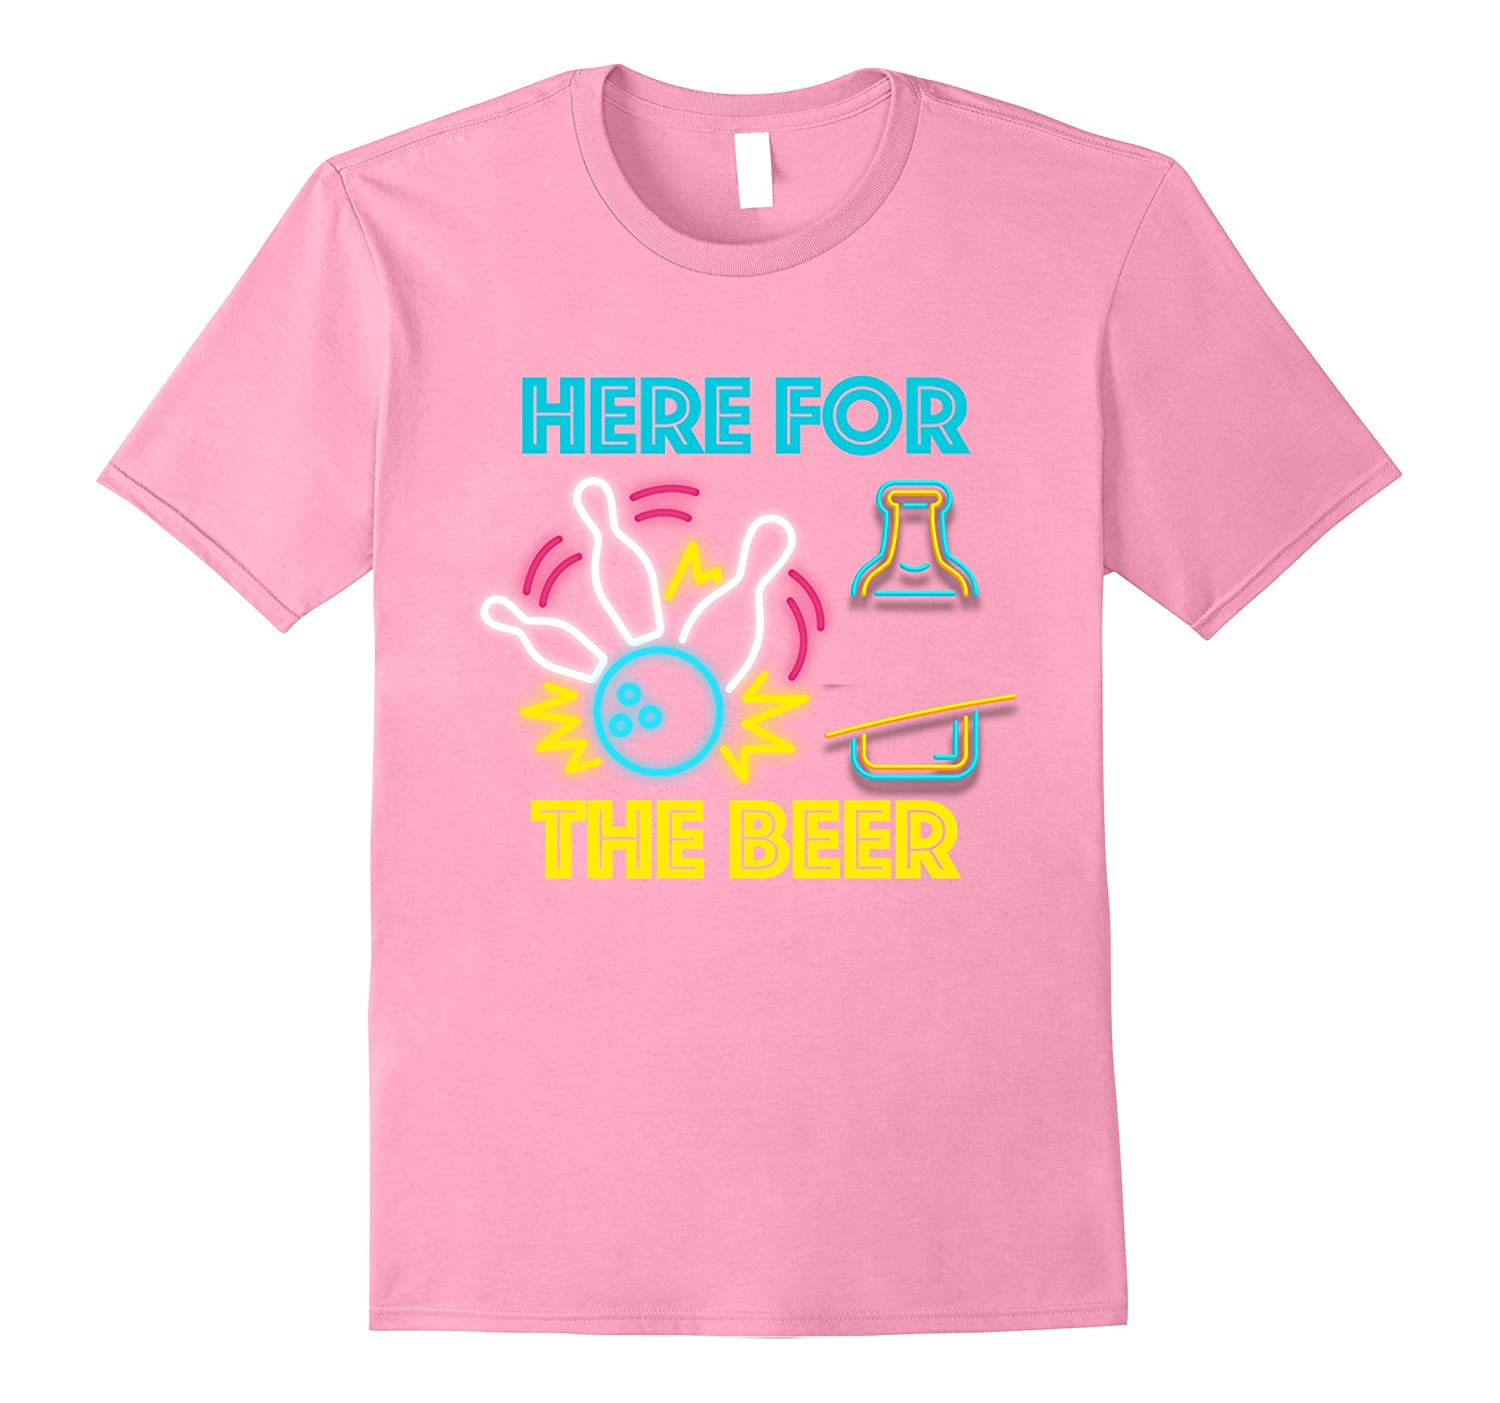 62ff8894d2 Funny Bowling Hobby Here For The Beer Drinking Novelty Shirt-Rose ...